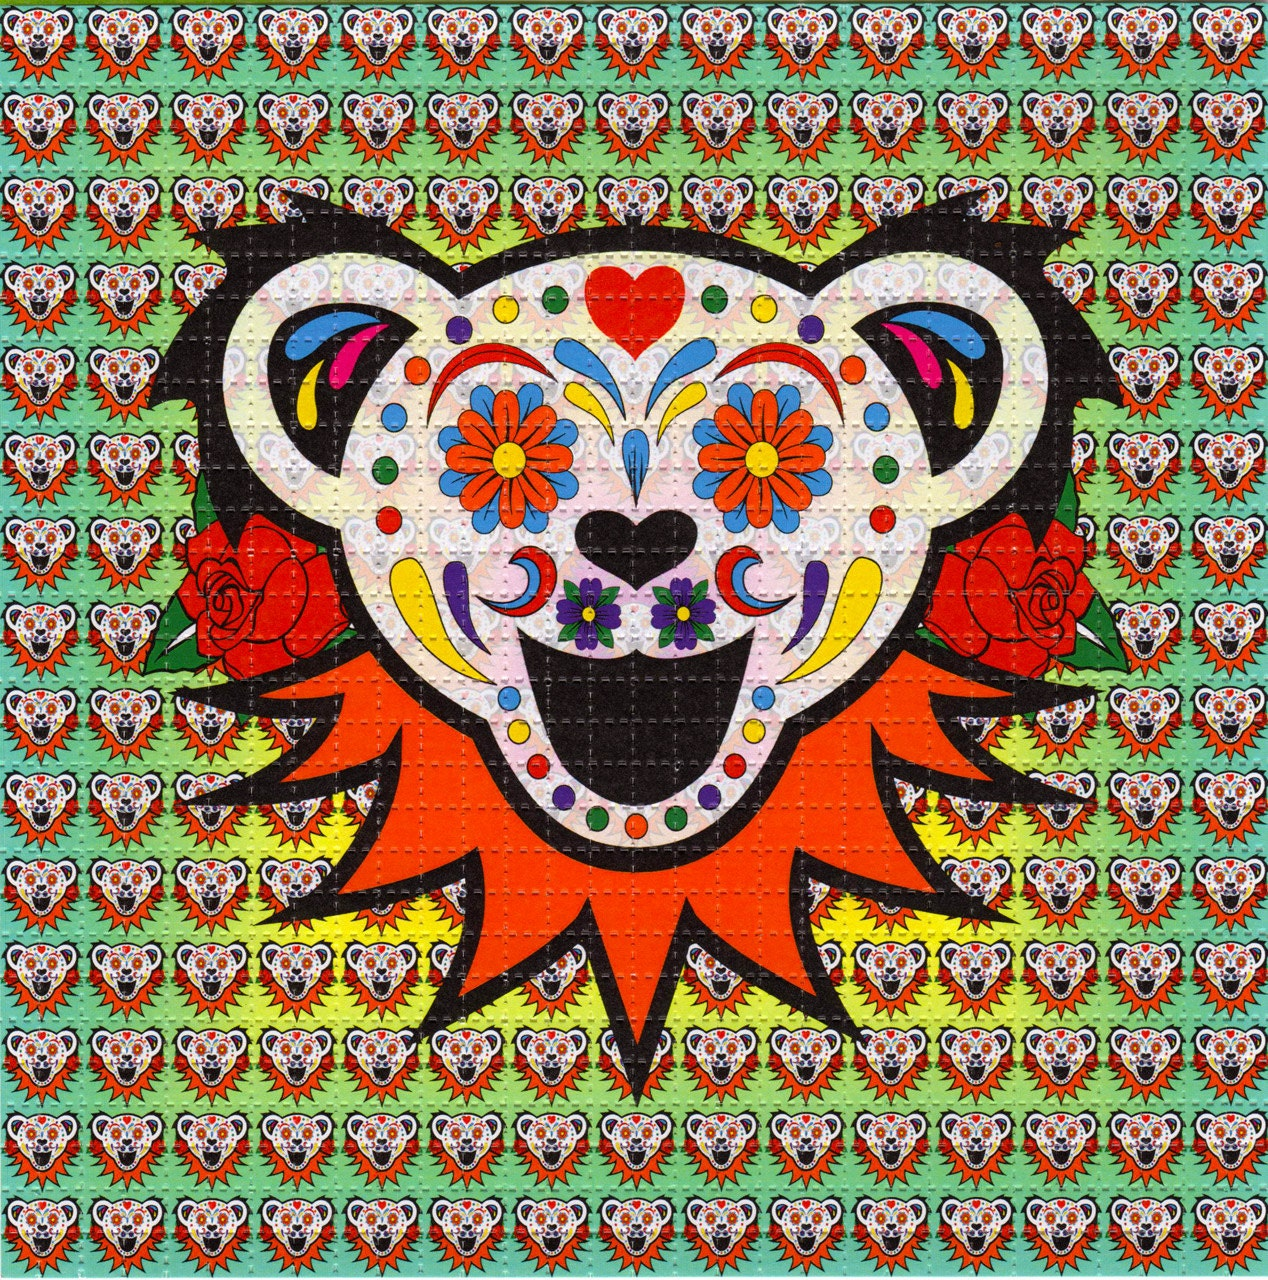 lsd blotter paper Let us assume you can obtain the following  a page of 900 hits of standard commercially available blotter paper (this works for anything.